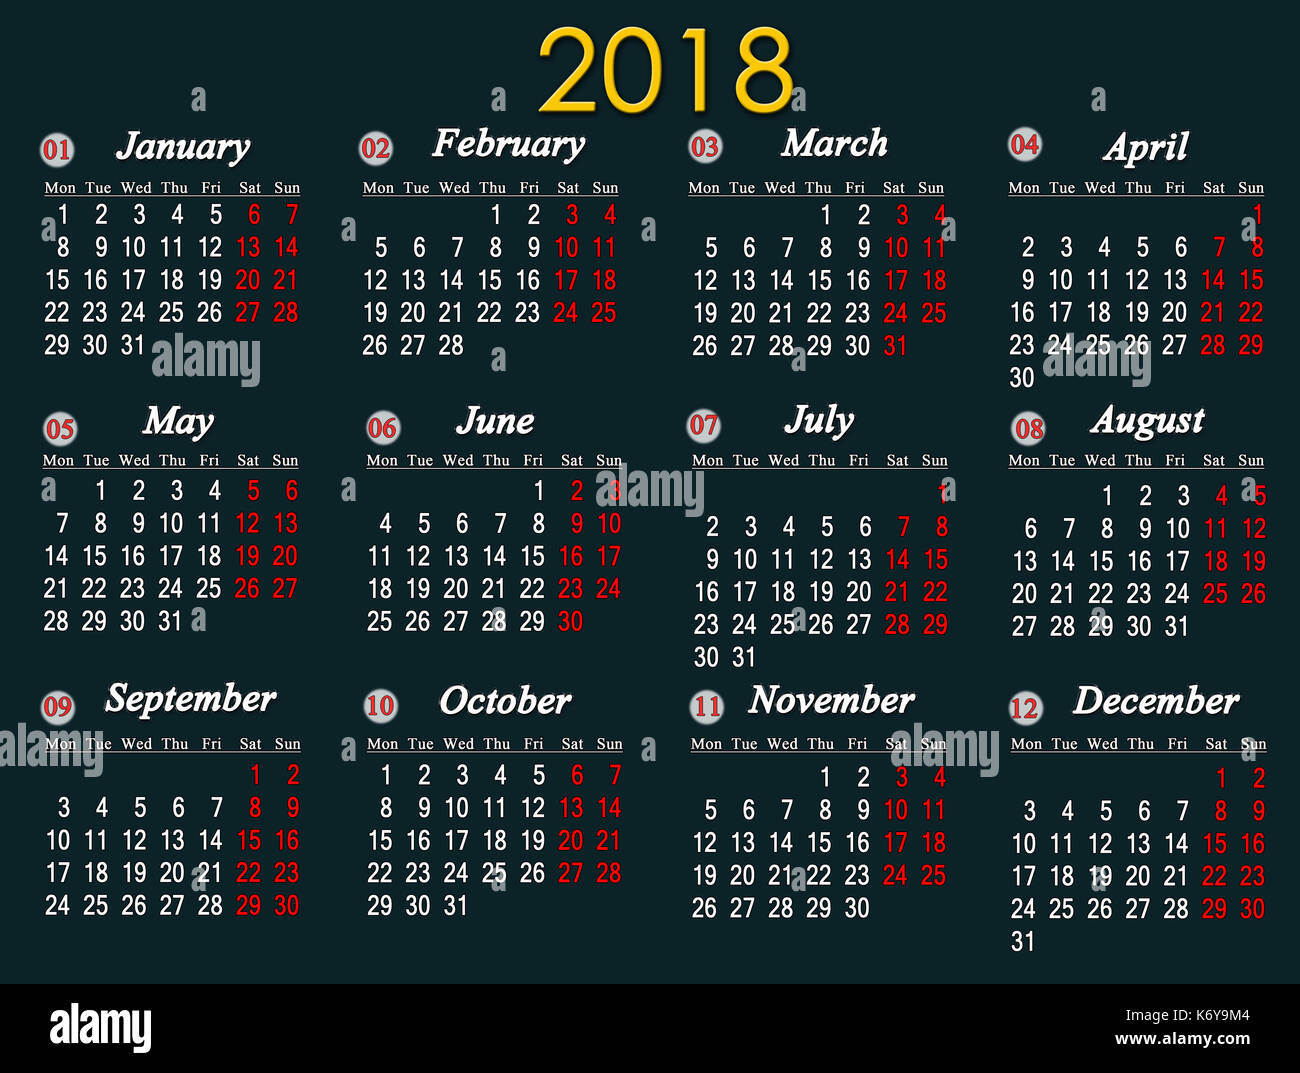 Next Year Calendar : Calendar week on sunday stock photos